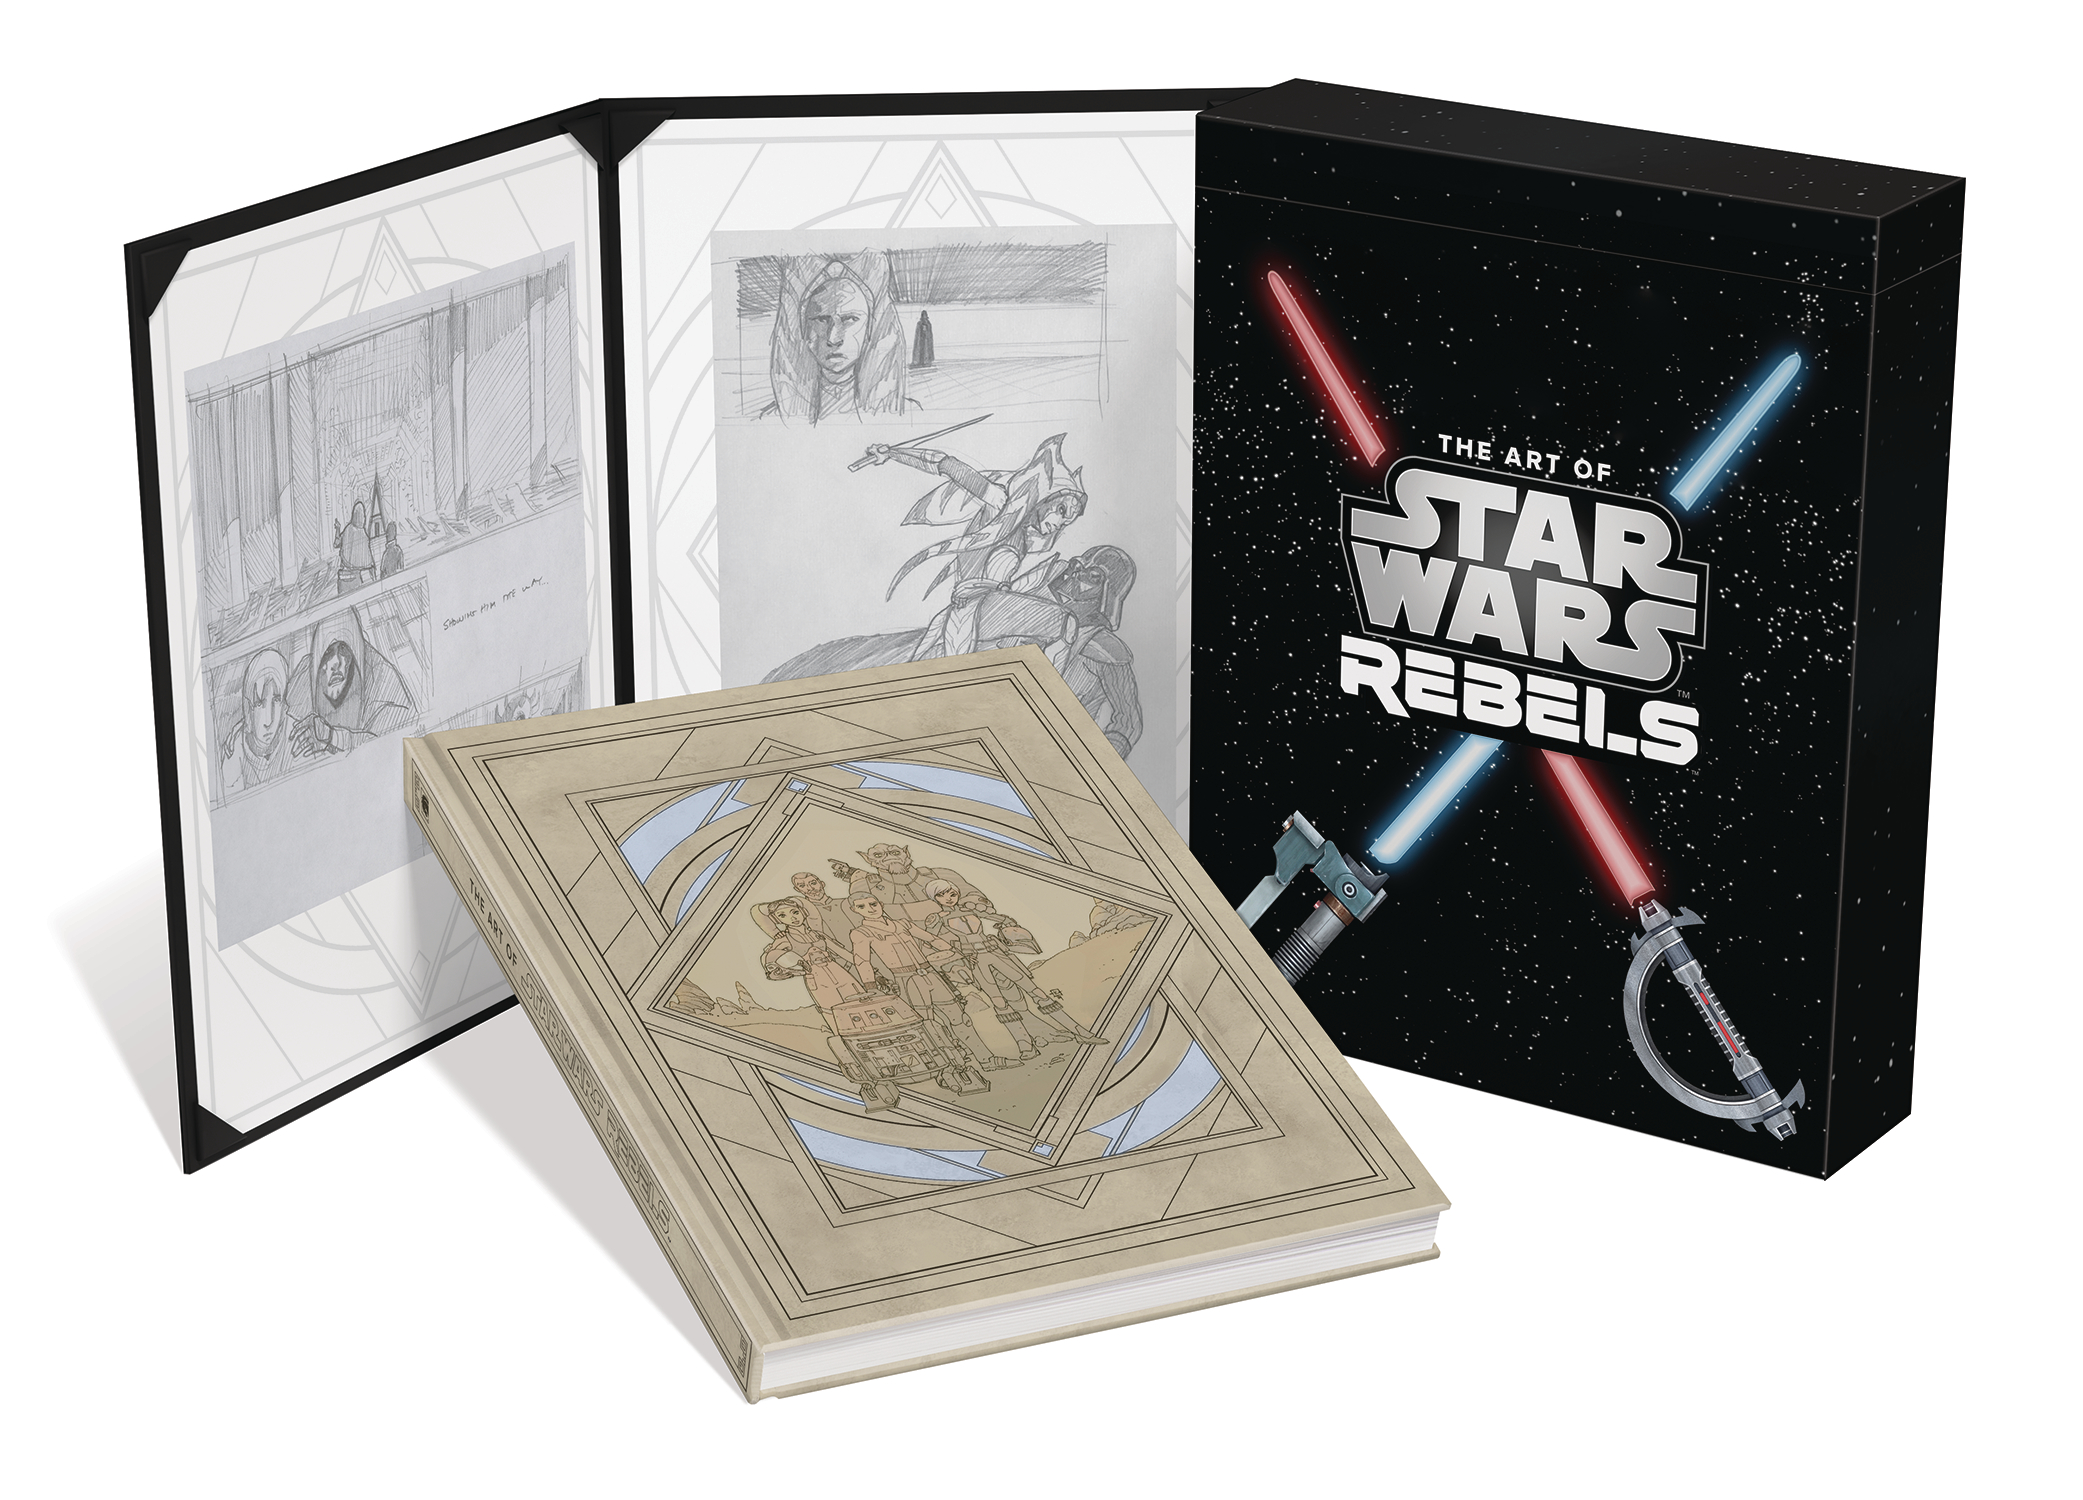 ART OF STAR WARS REBELS LTD ED HC